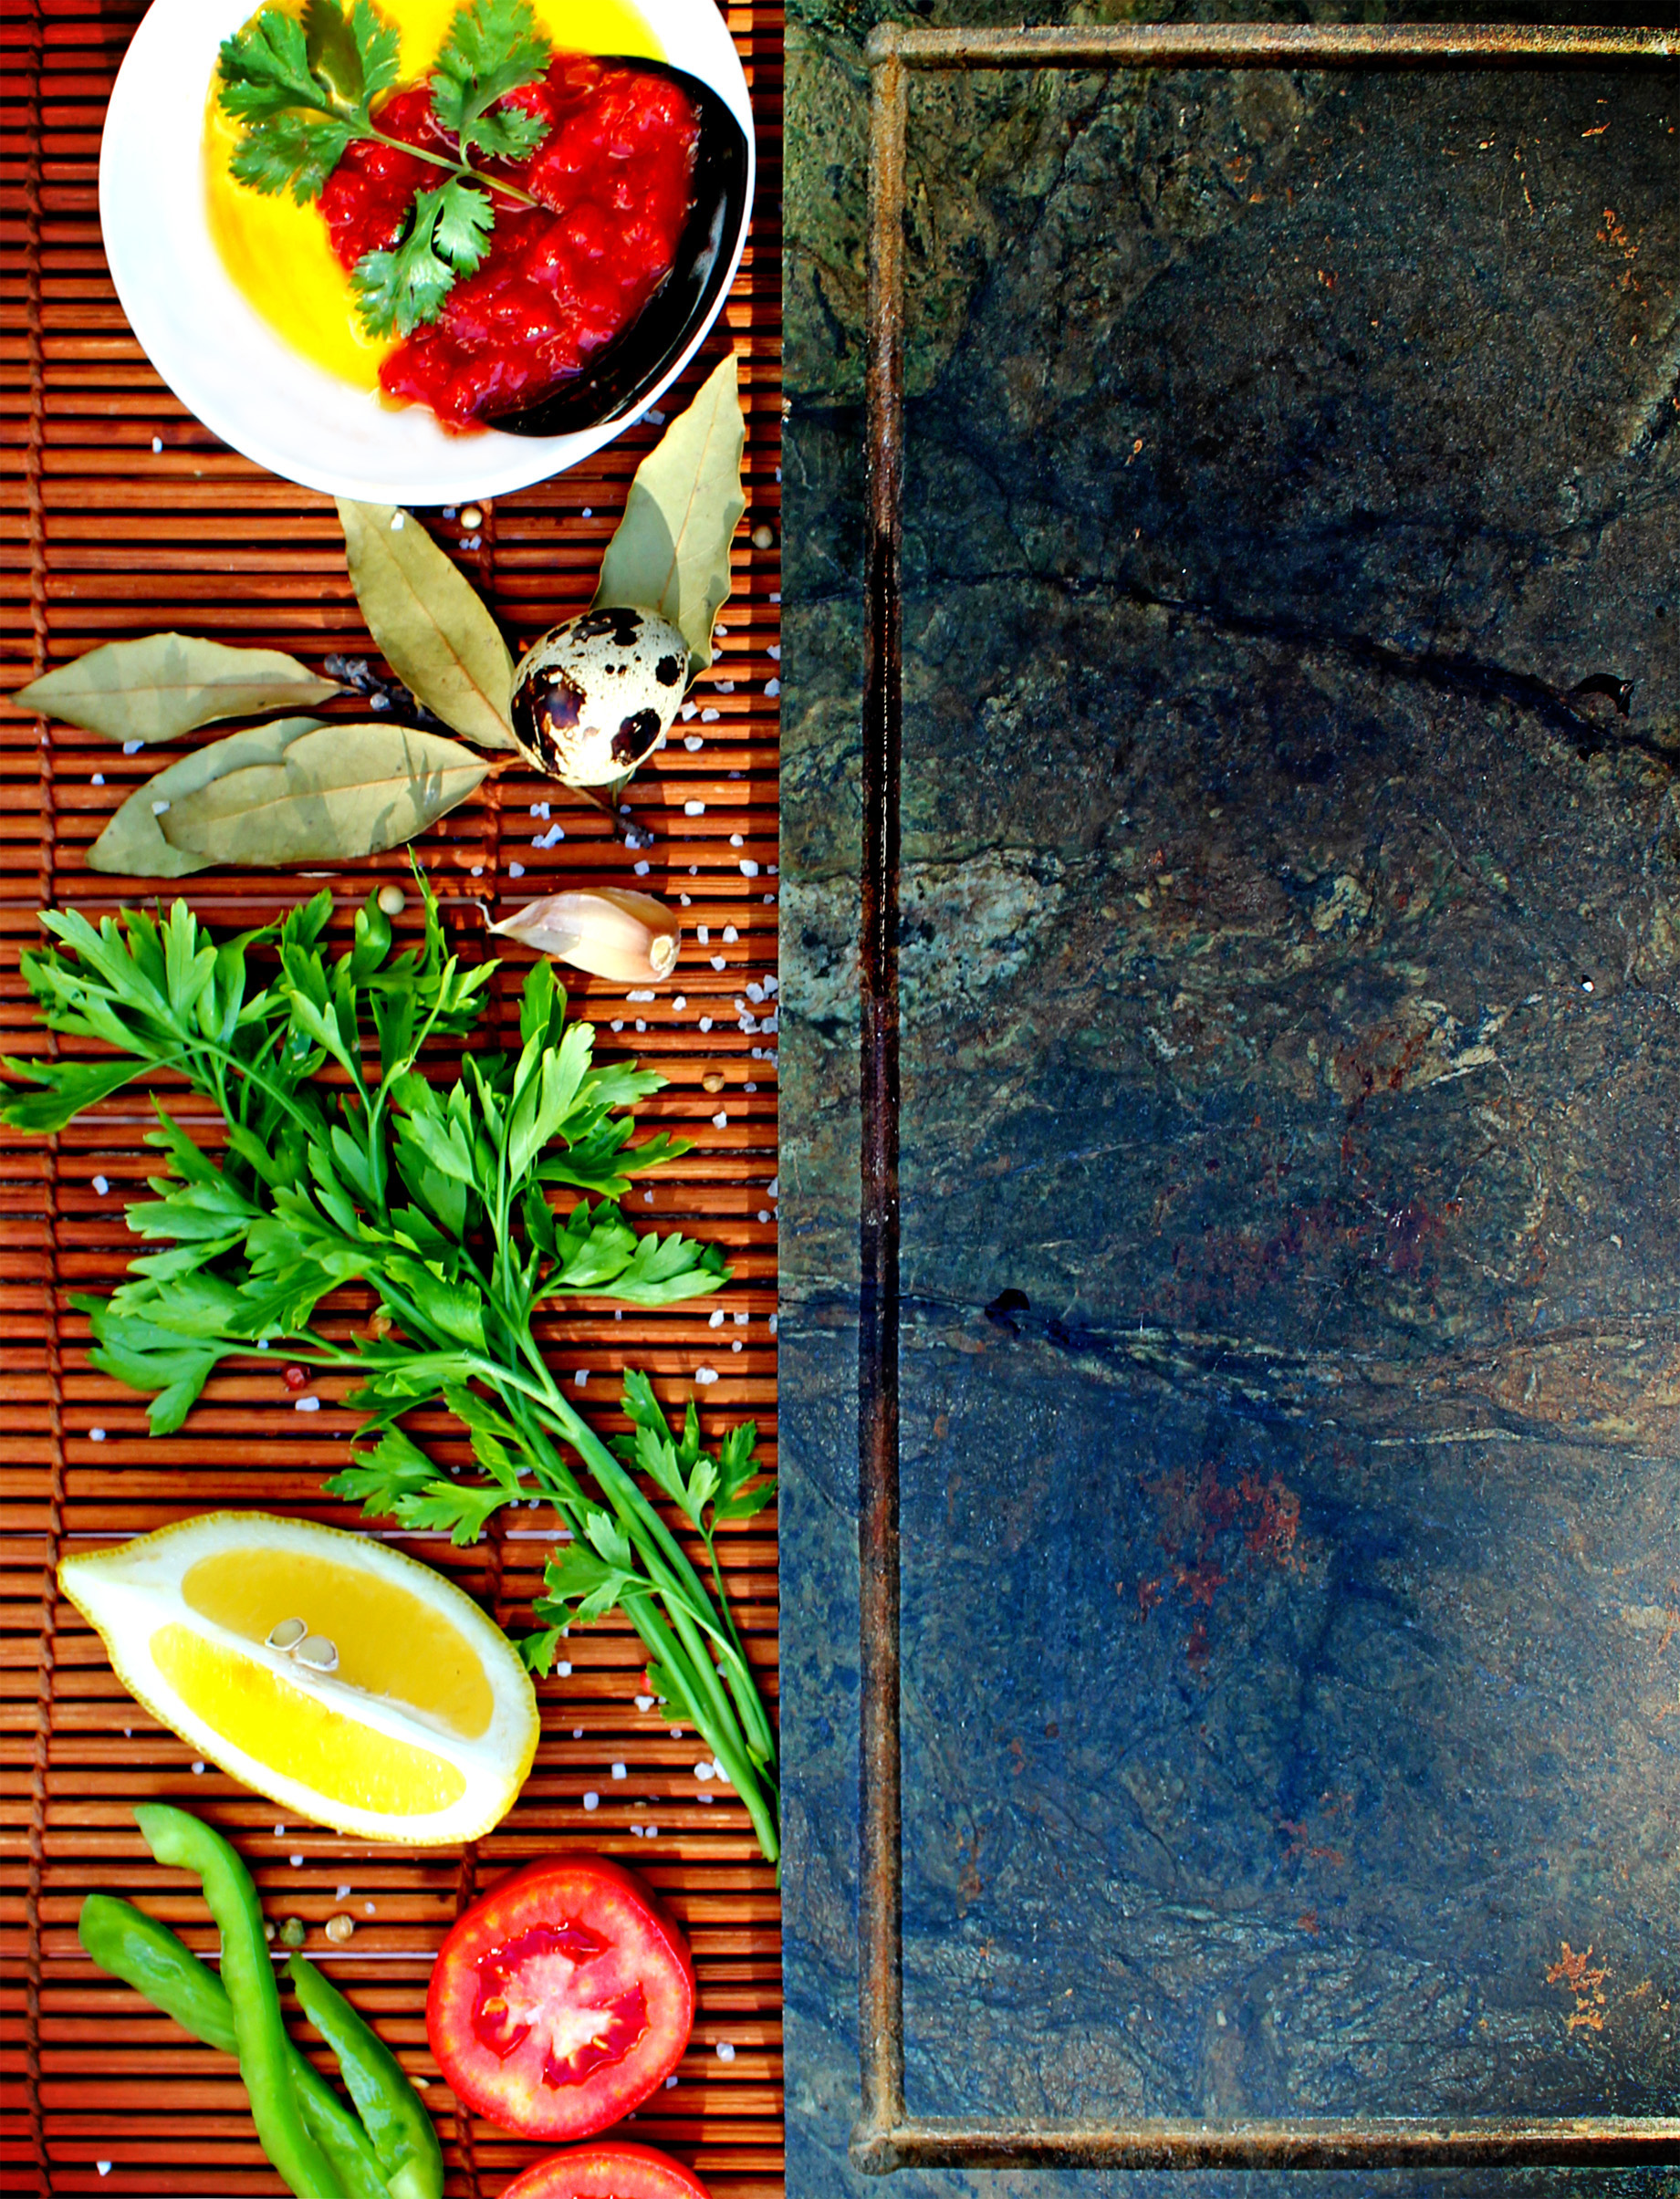 Basic mediterranean cooking ingredients photo